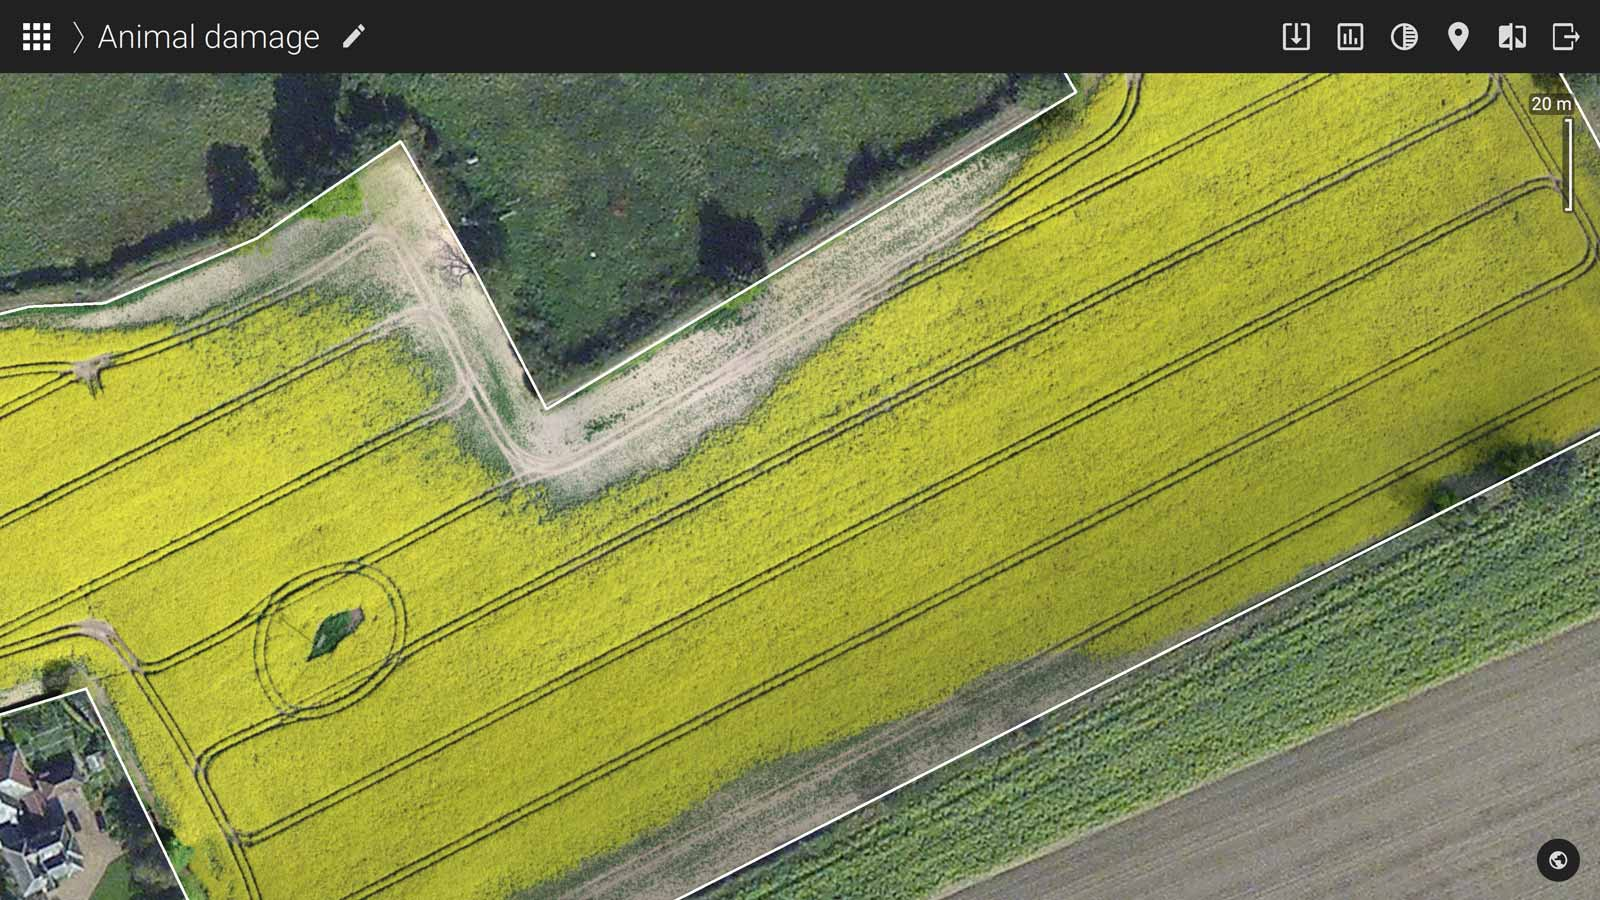 precision agriculture orthomosaic of a canola field